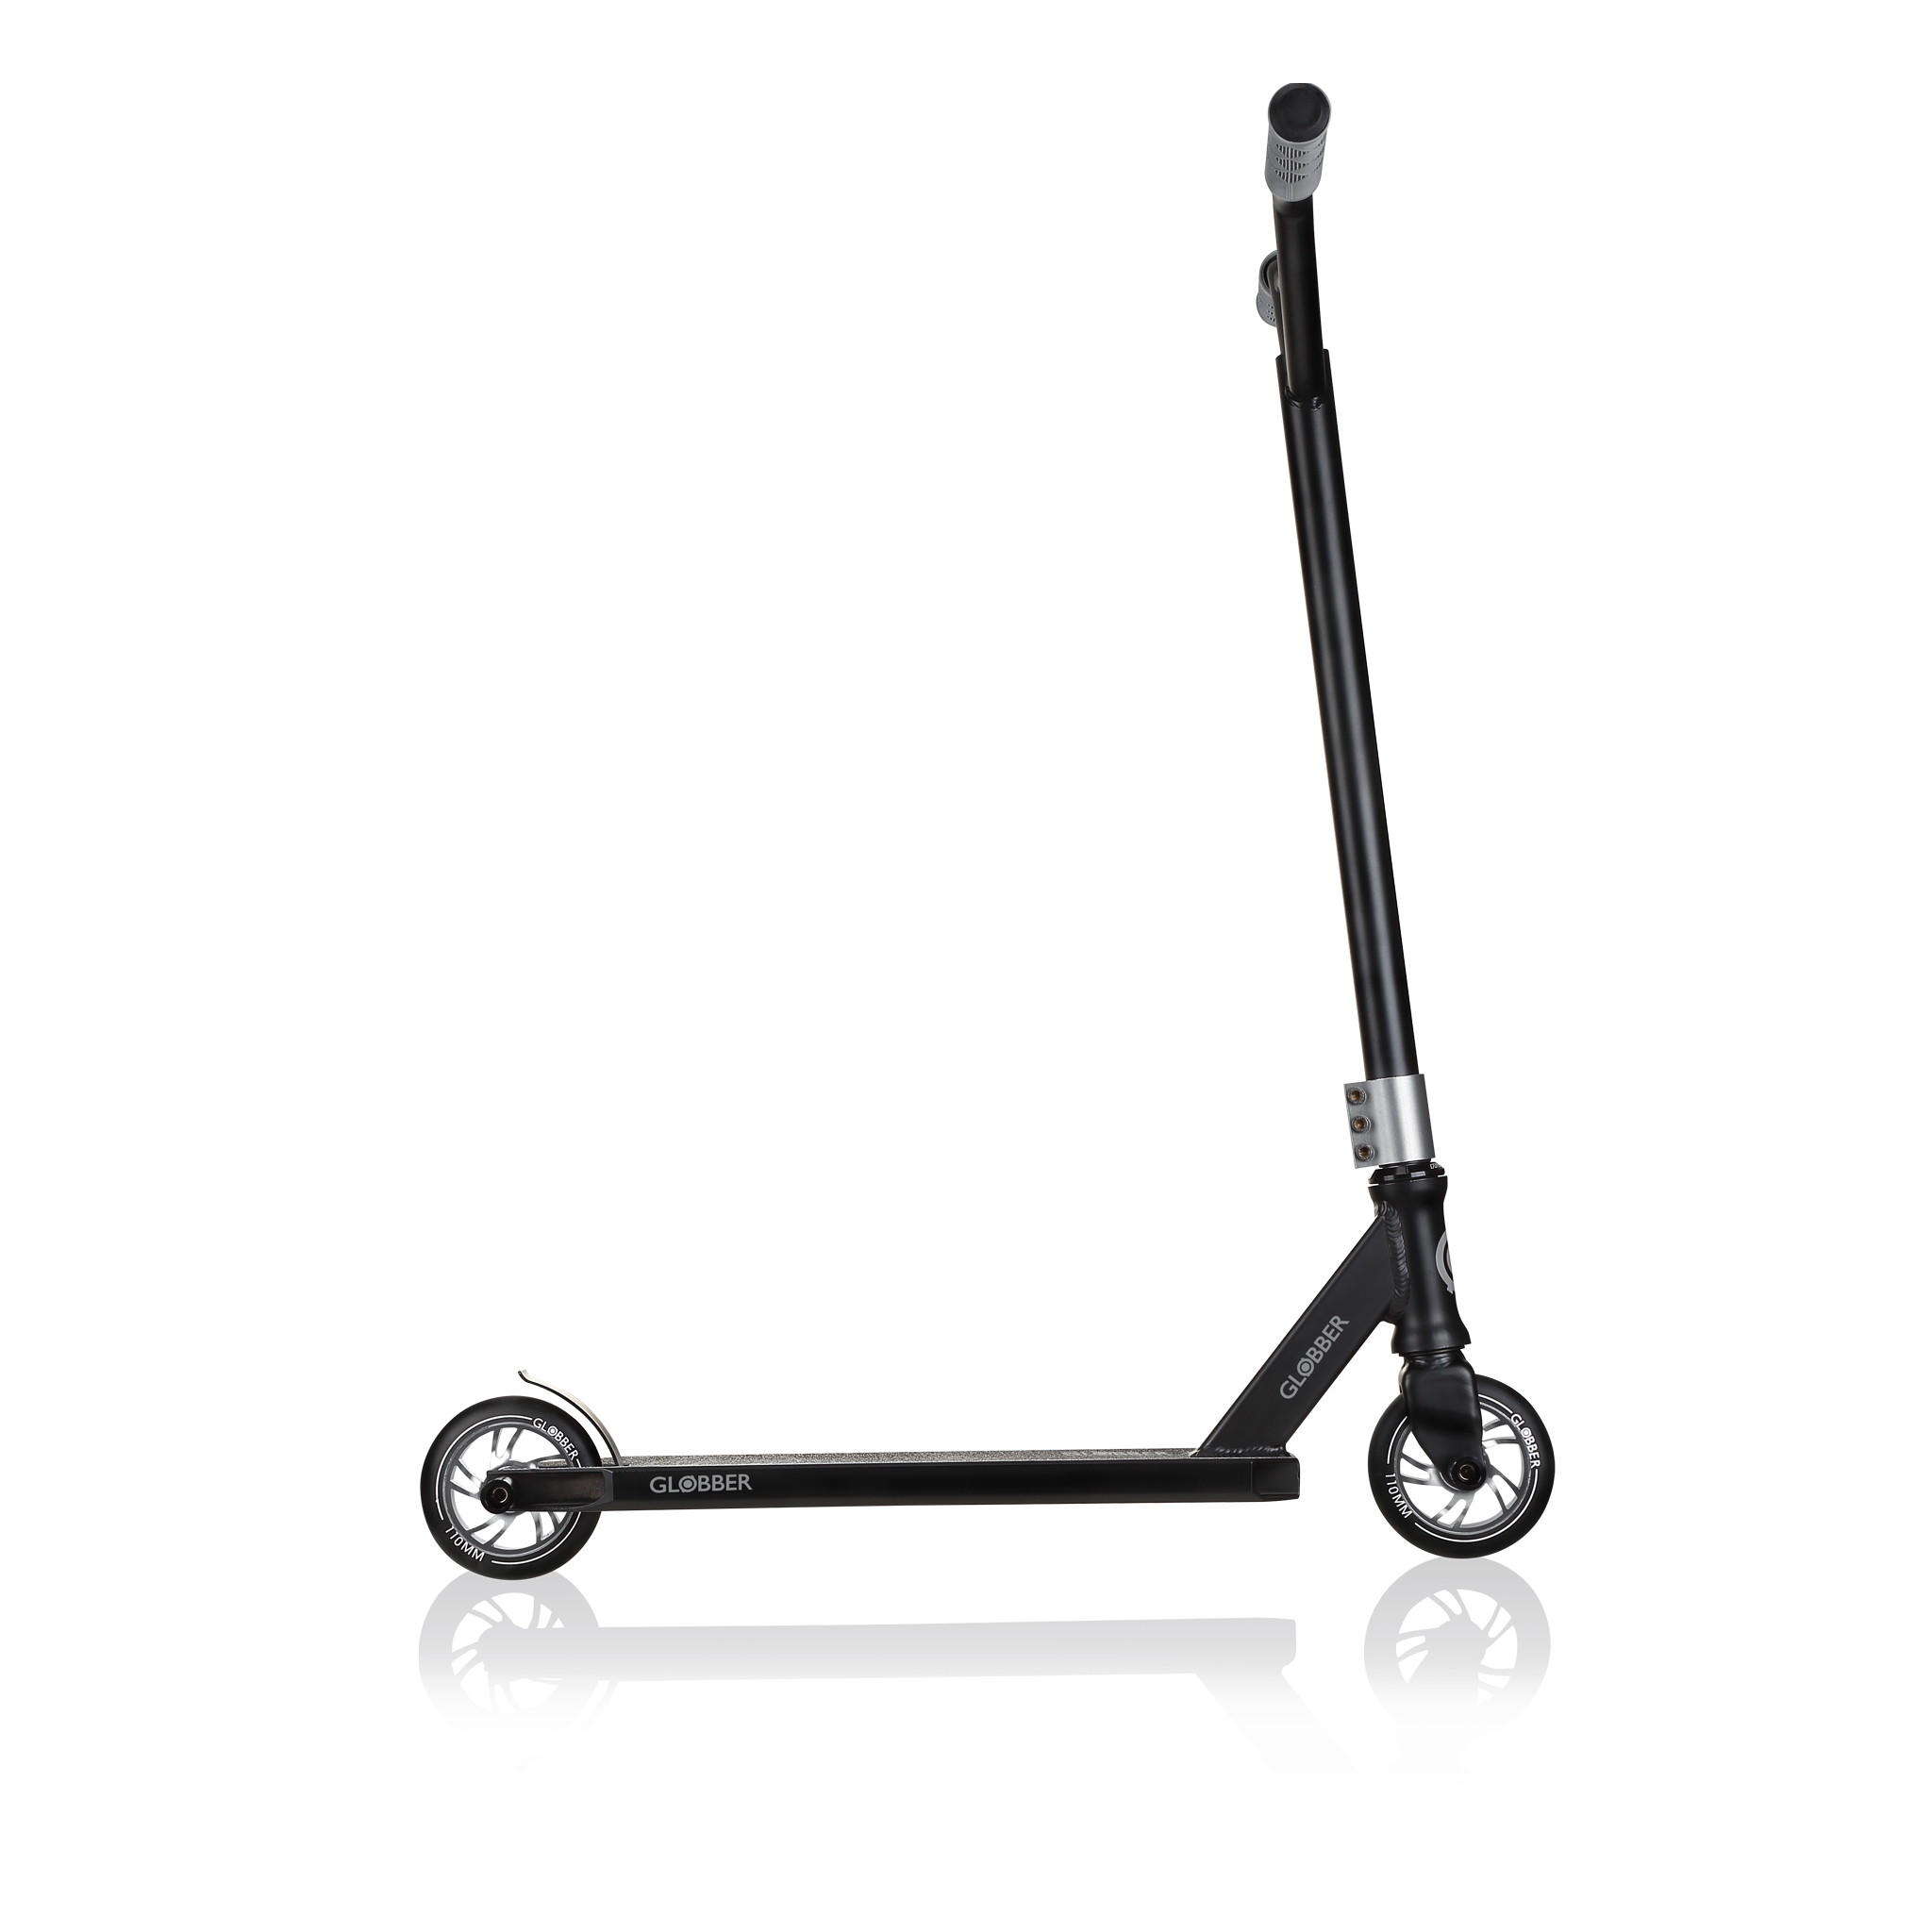 stunt scooter for teens aged 8+ - Globber GS 720 3